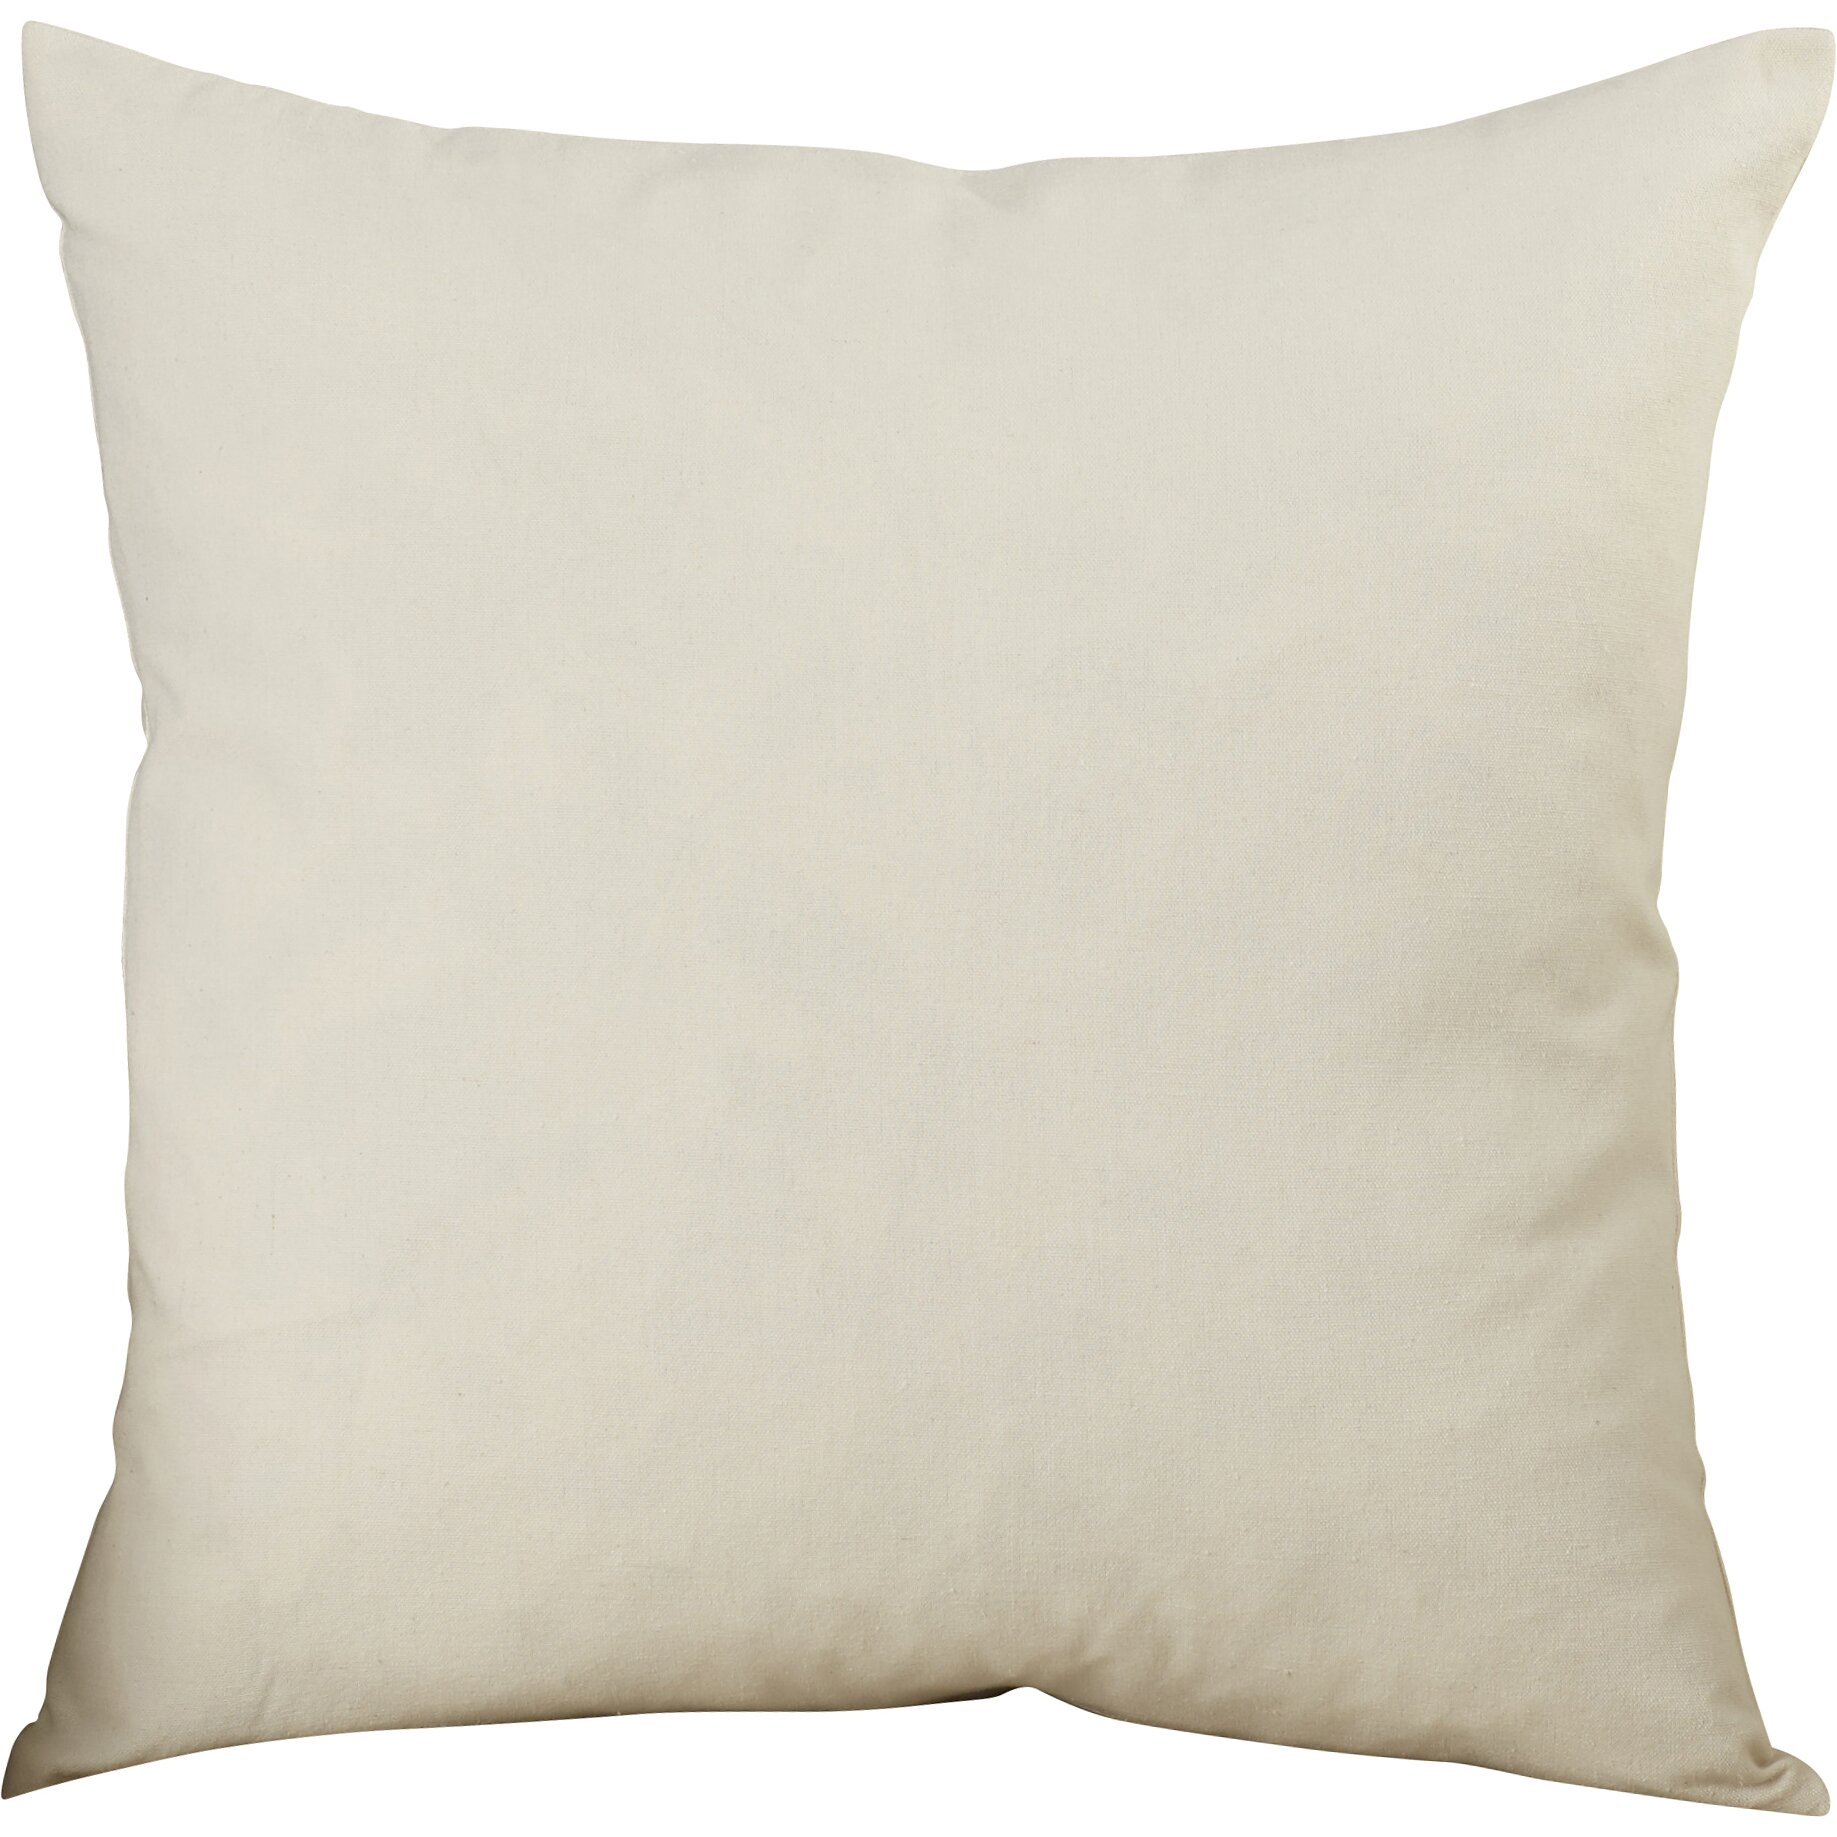 Throw Pillows The Bay : Bay Isle Home Vincent Cotton Throw Pillow & Reviews Wayfair